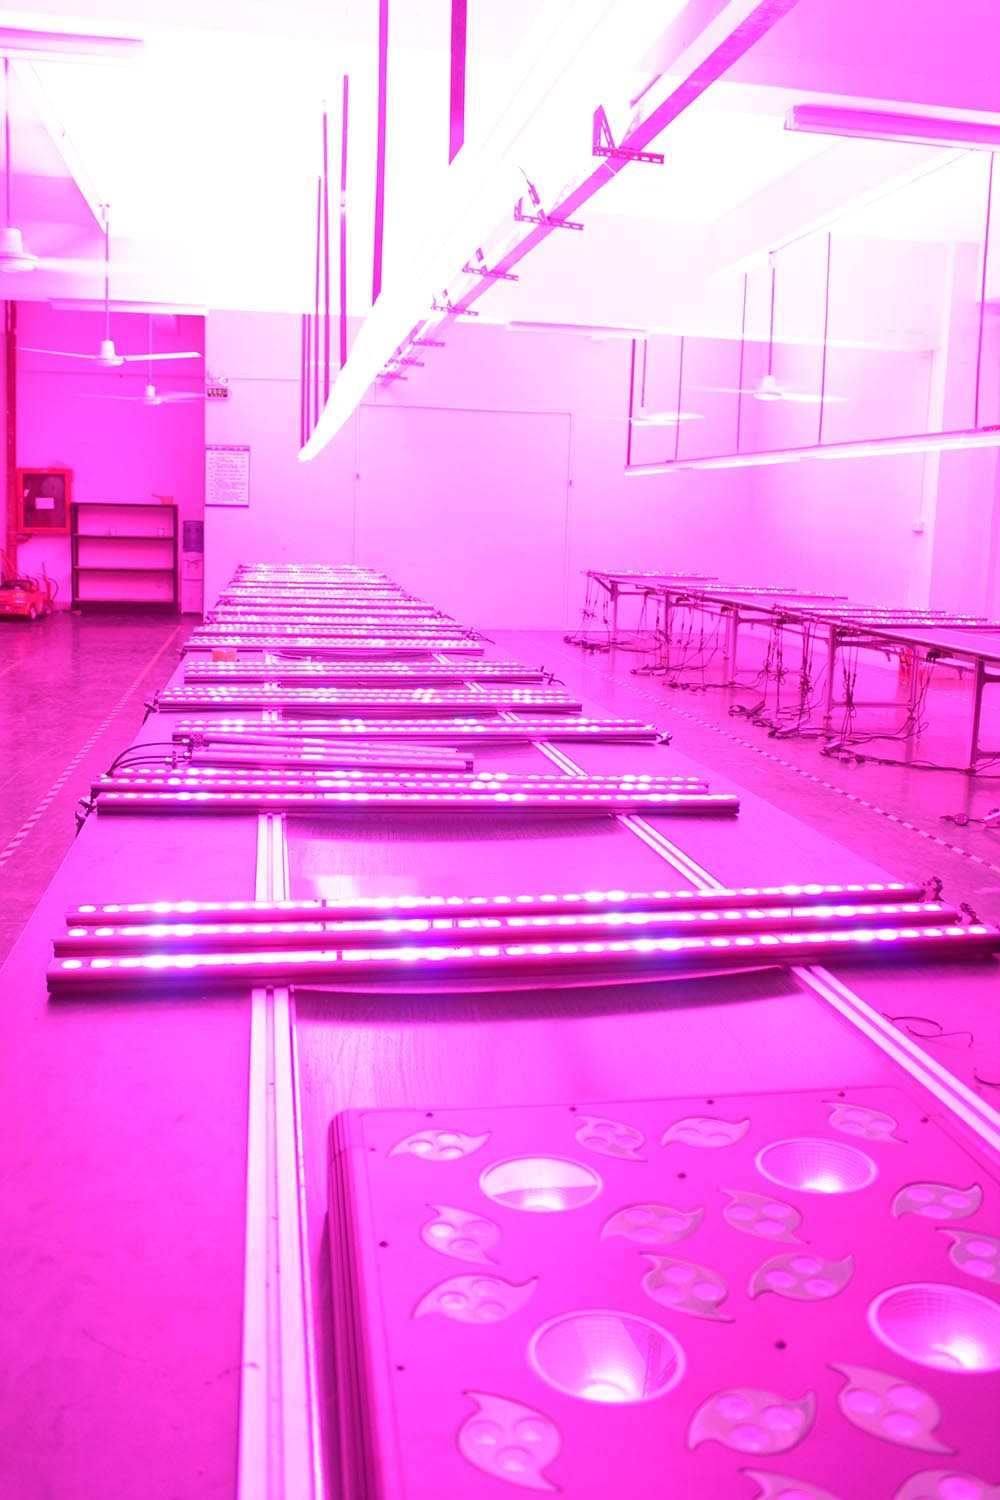 Shenzheng Factory 1280w(256*5w) LED Grow Lighting,LED Grow Lights, Apollo led grow light